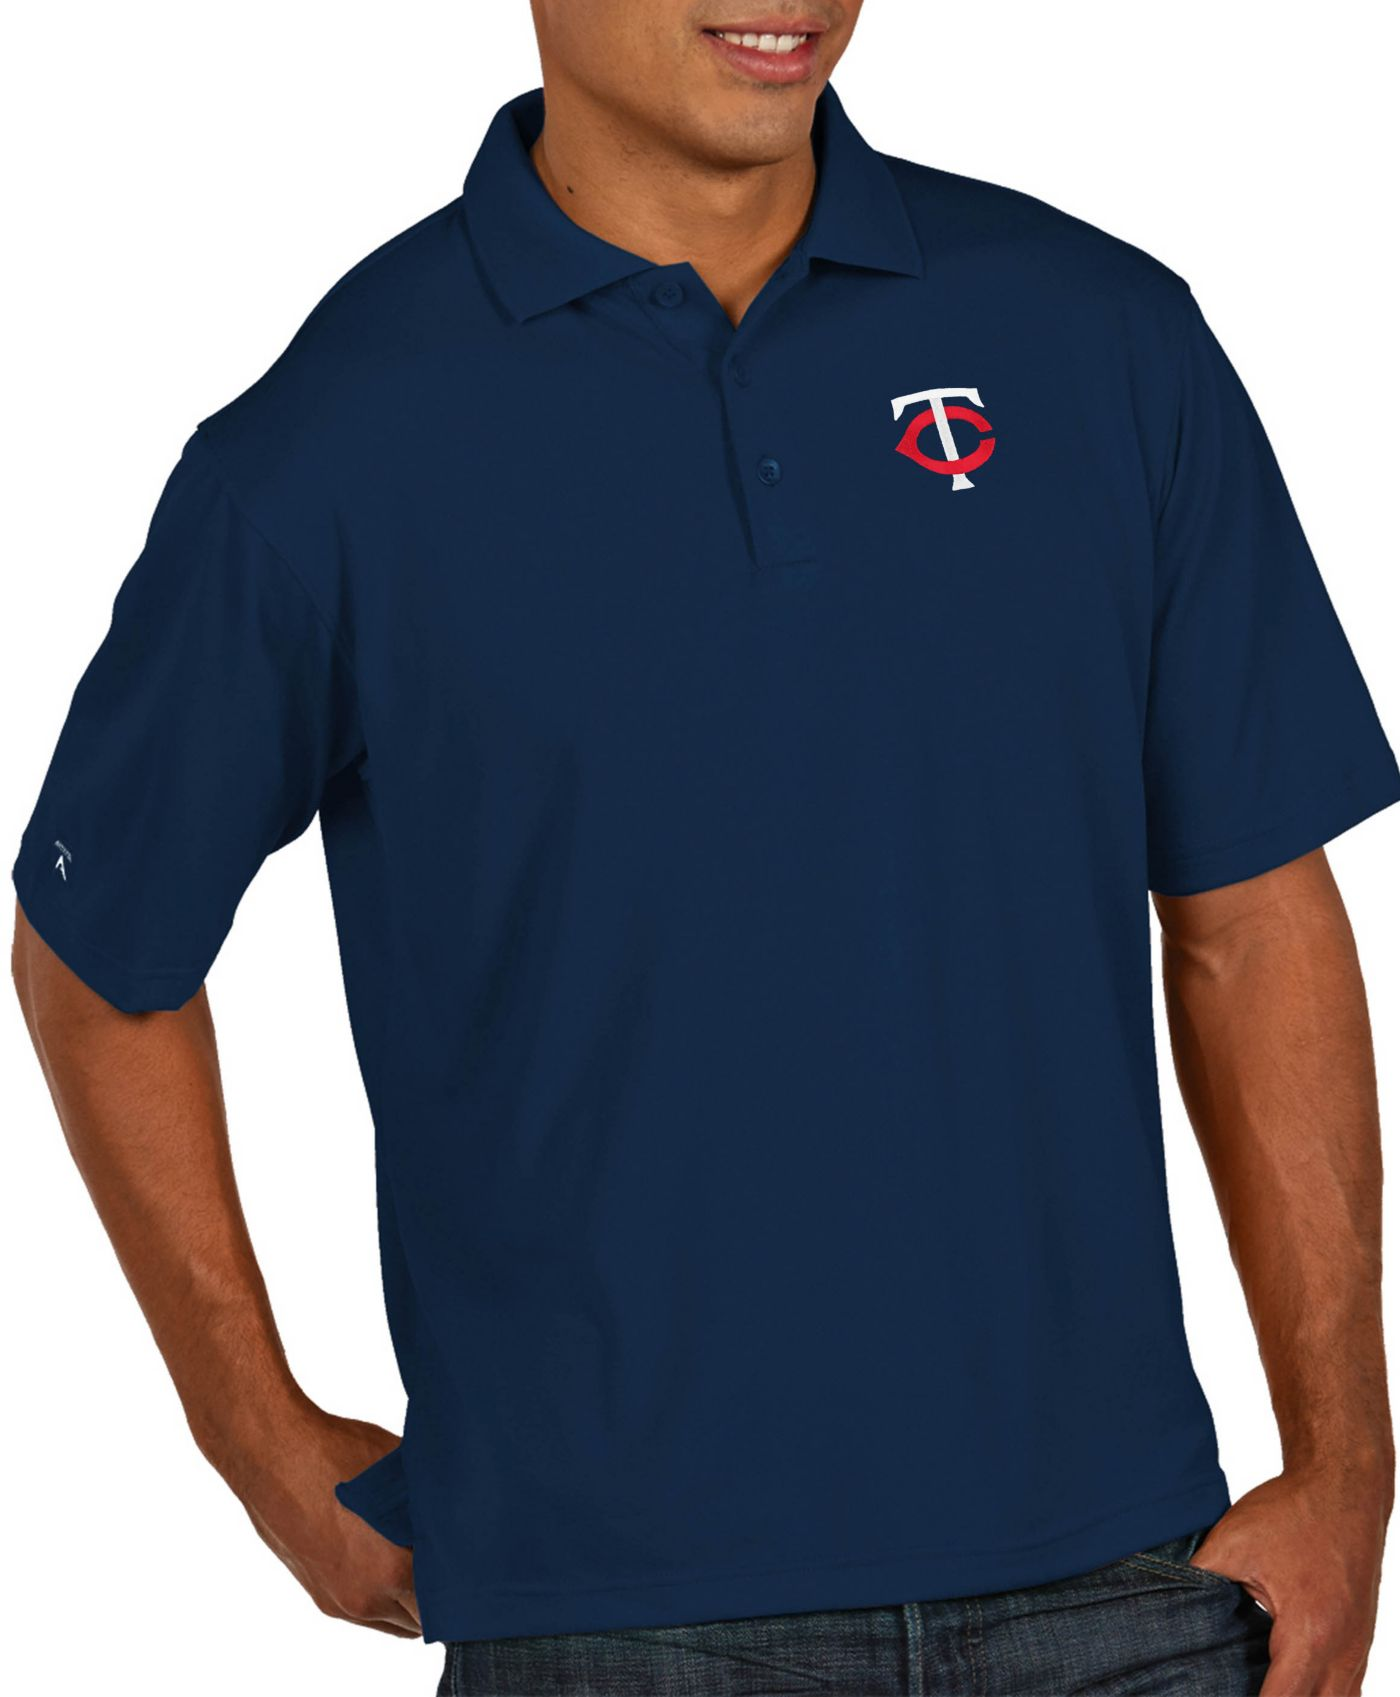 Antigua Men's Minnesota Twins Pique Navy Performance Polo